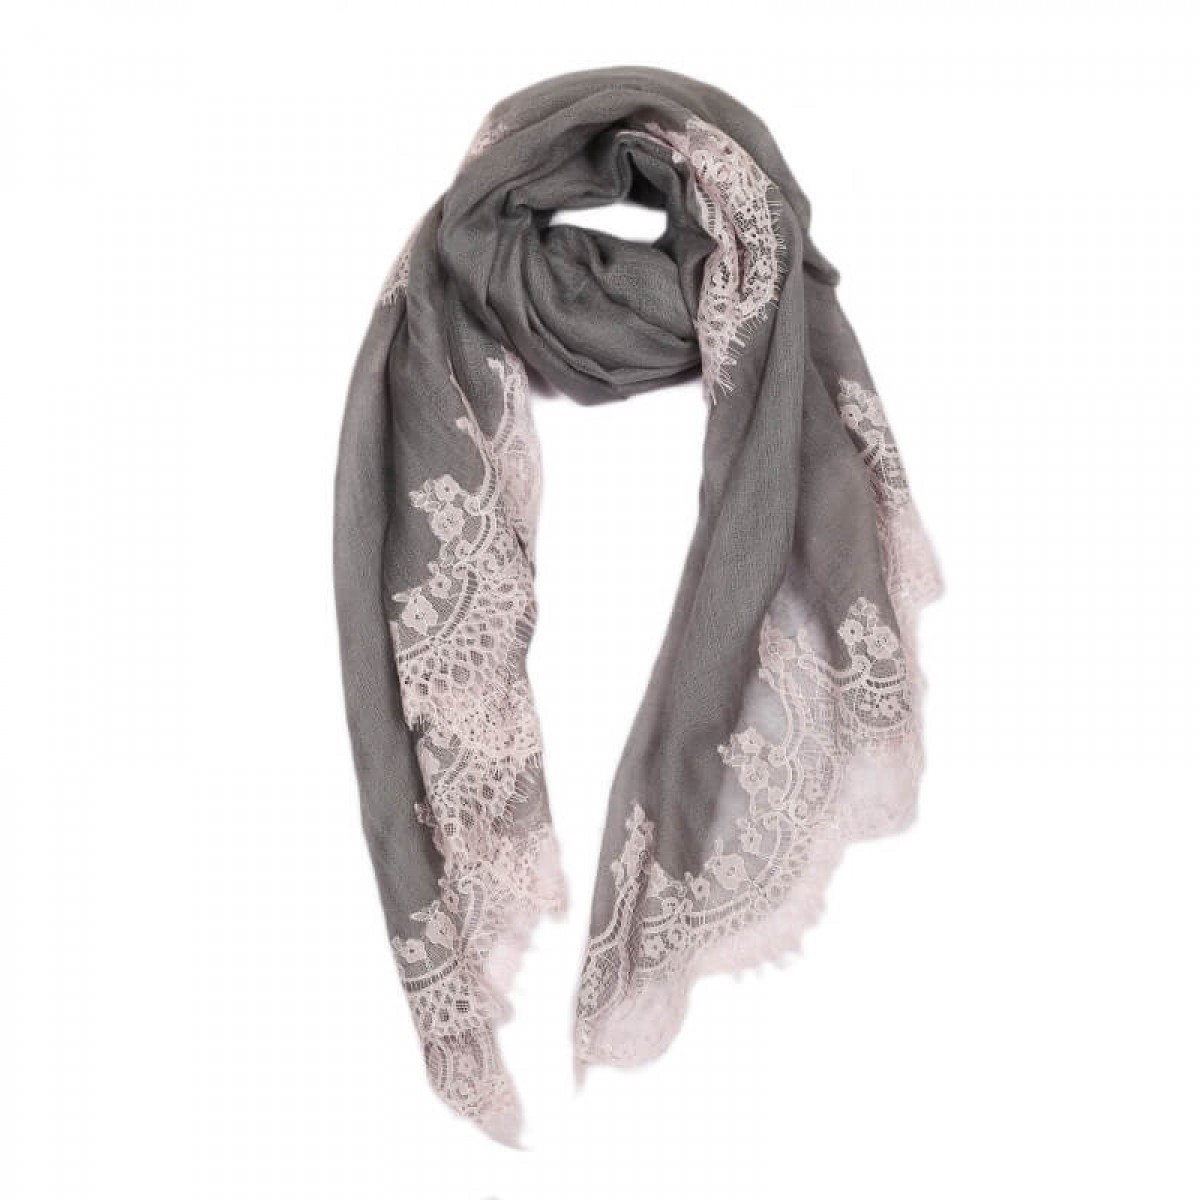 Lace Sheer Pashmina Scarf - Pewter Grey